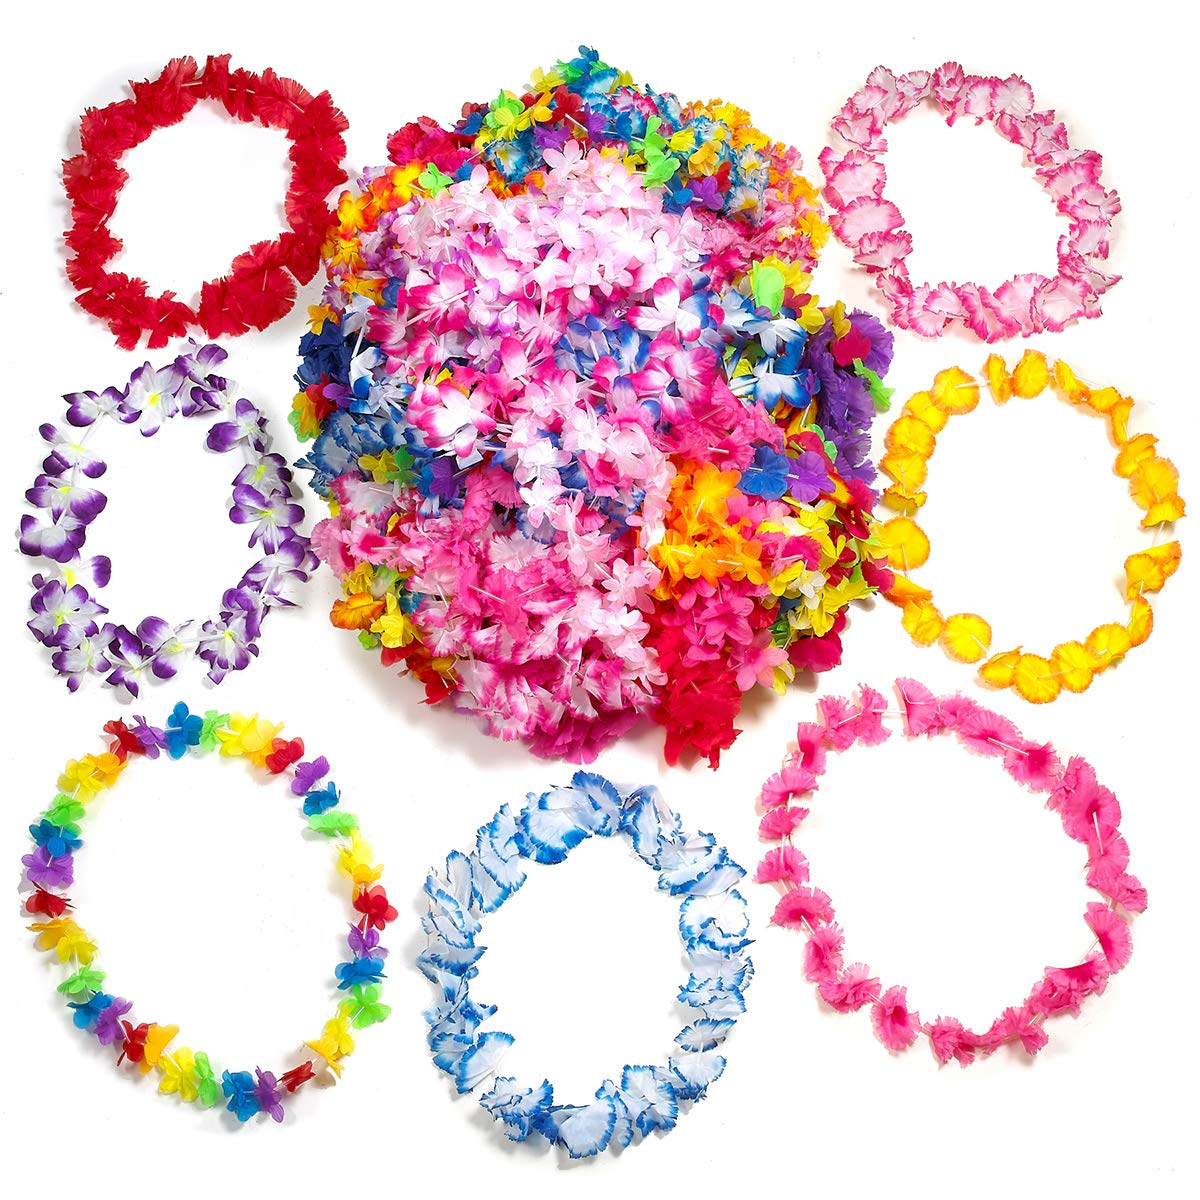 Kicko 36 - 42 Inch Hawaiian Leis - 100 Pieces of Luau Flower Necklace Assortment - Perfect for Tropical Decorations, Birthday Bash, Beach and Pool Parties, Party Favor and Supplies by Kicko (Image #1)